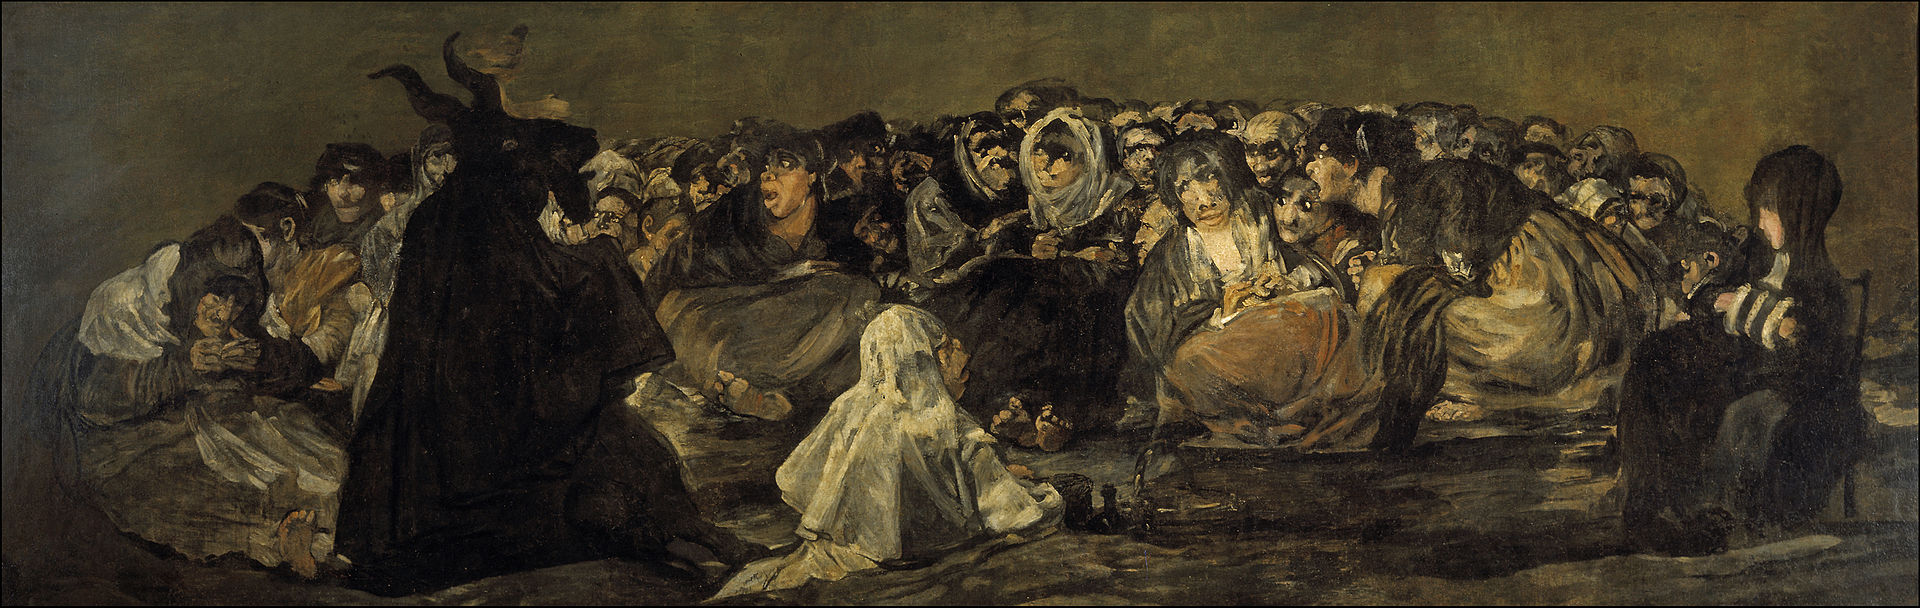 francisco_de_goya_y_lucientes_witches_sabbath_the_great_he-goat.jpg